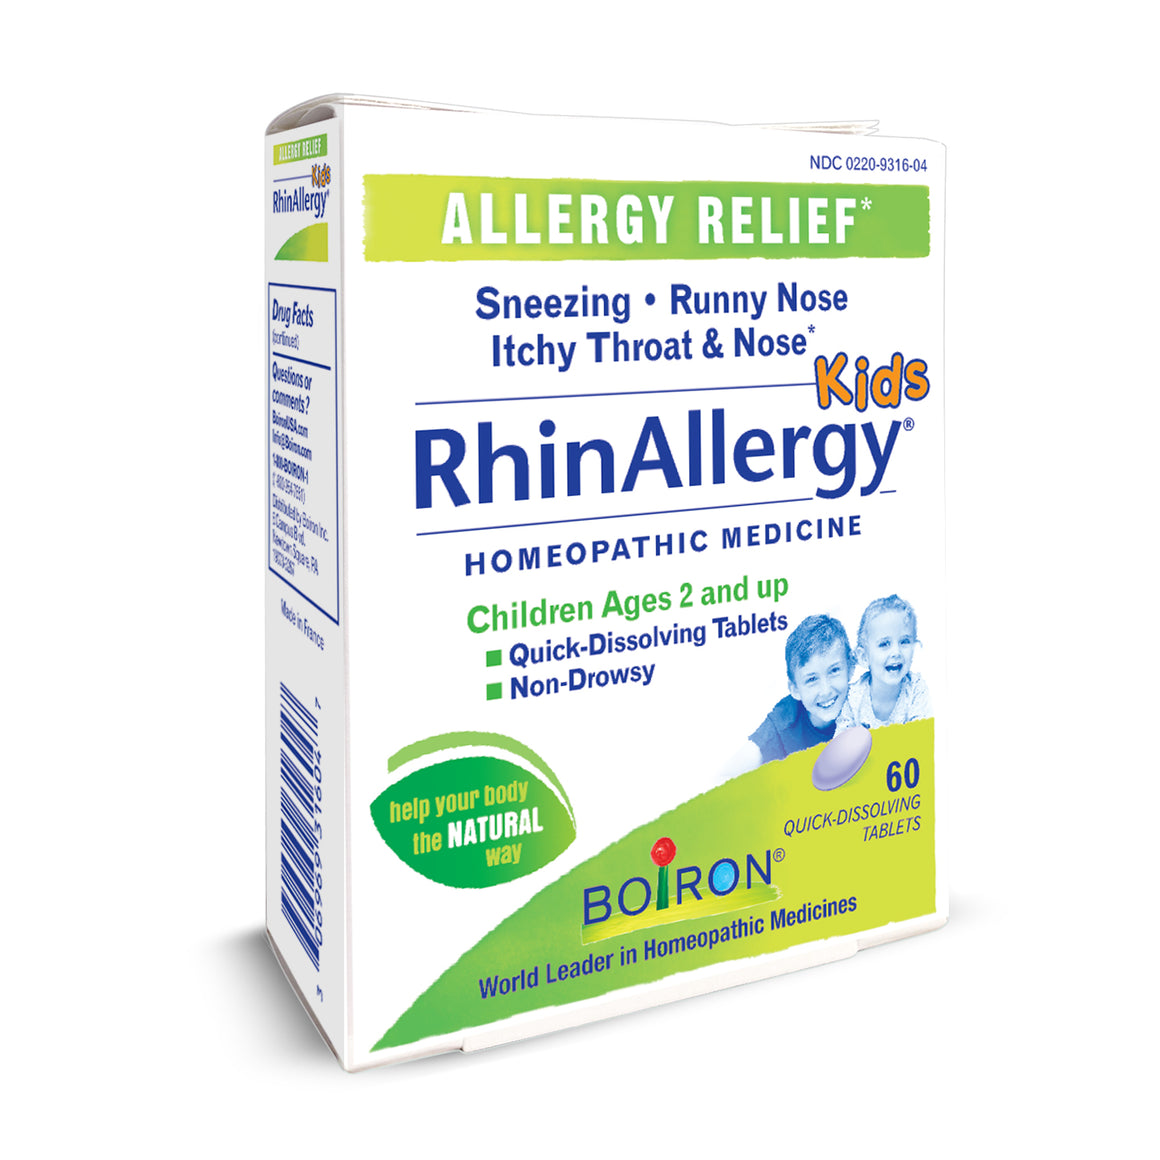 RhinAllergy® Kids Tablets Boiron